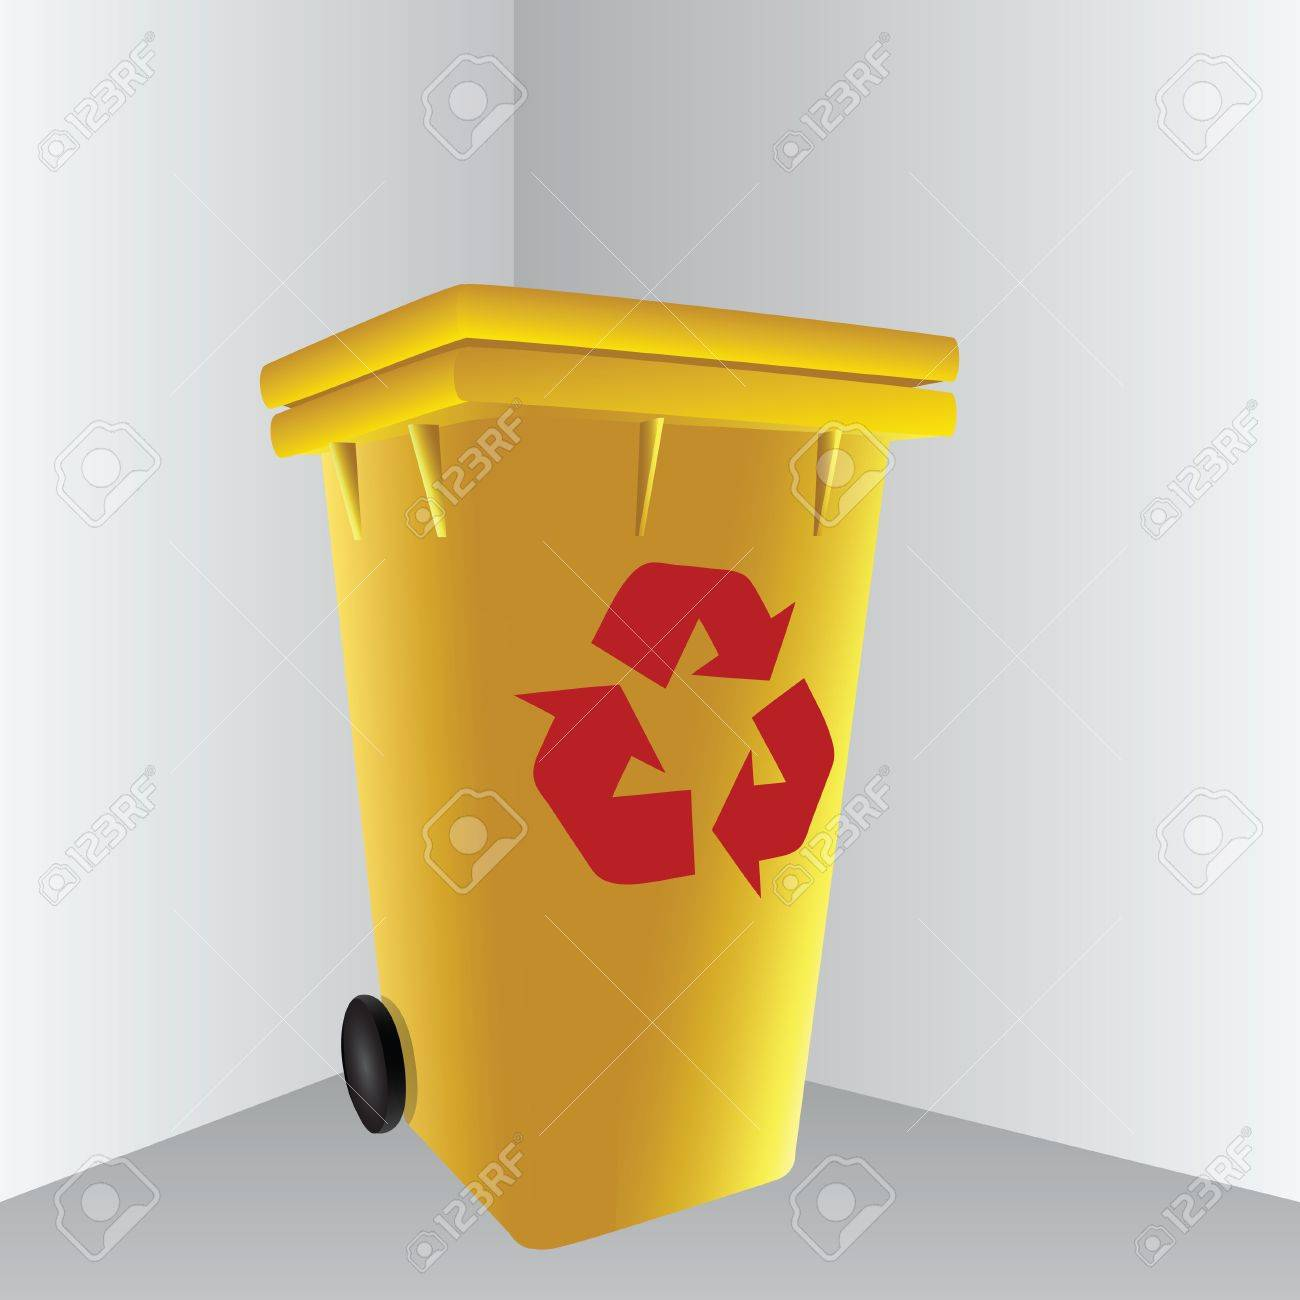 Symbol processing in a trash can. Stock Vector - 16673462